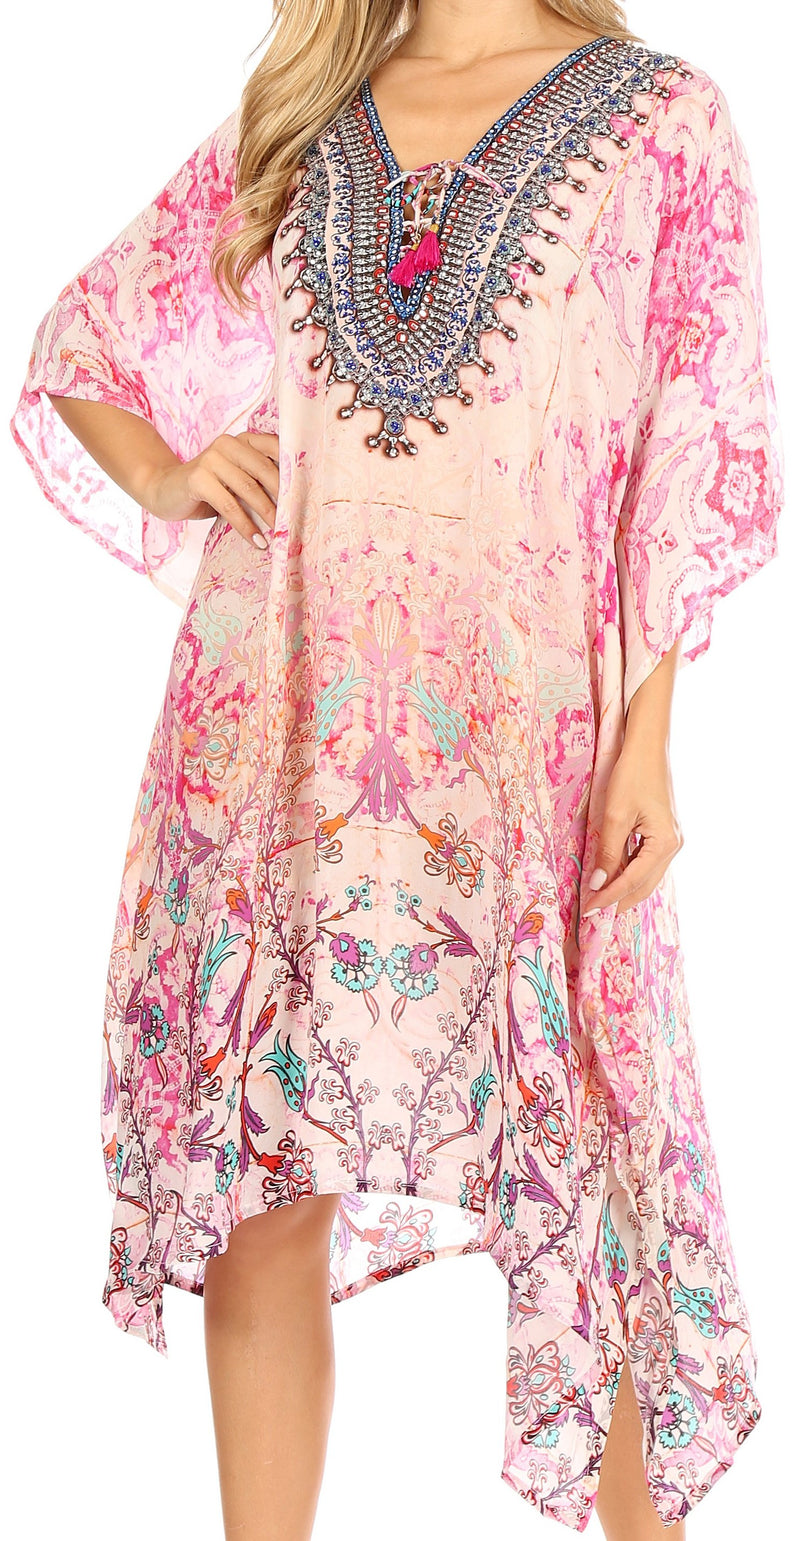 Sakkas Zeni Women's Short sleeve V-neck Summer Floral Print Caftan Dress Cover-up